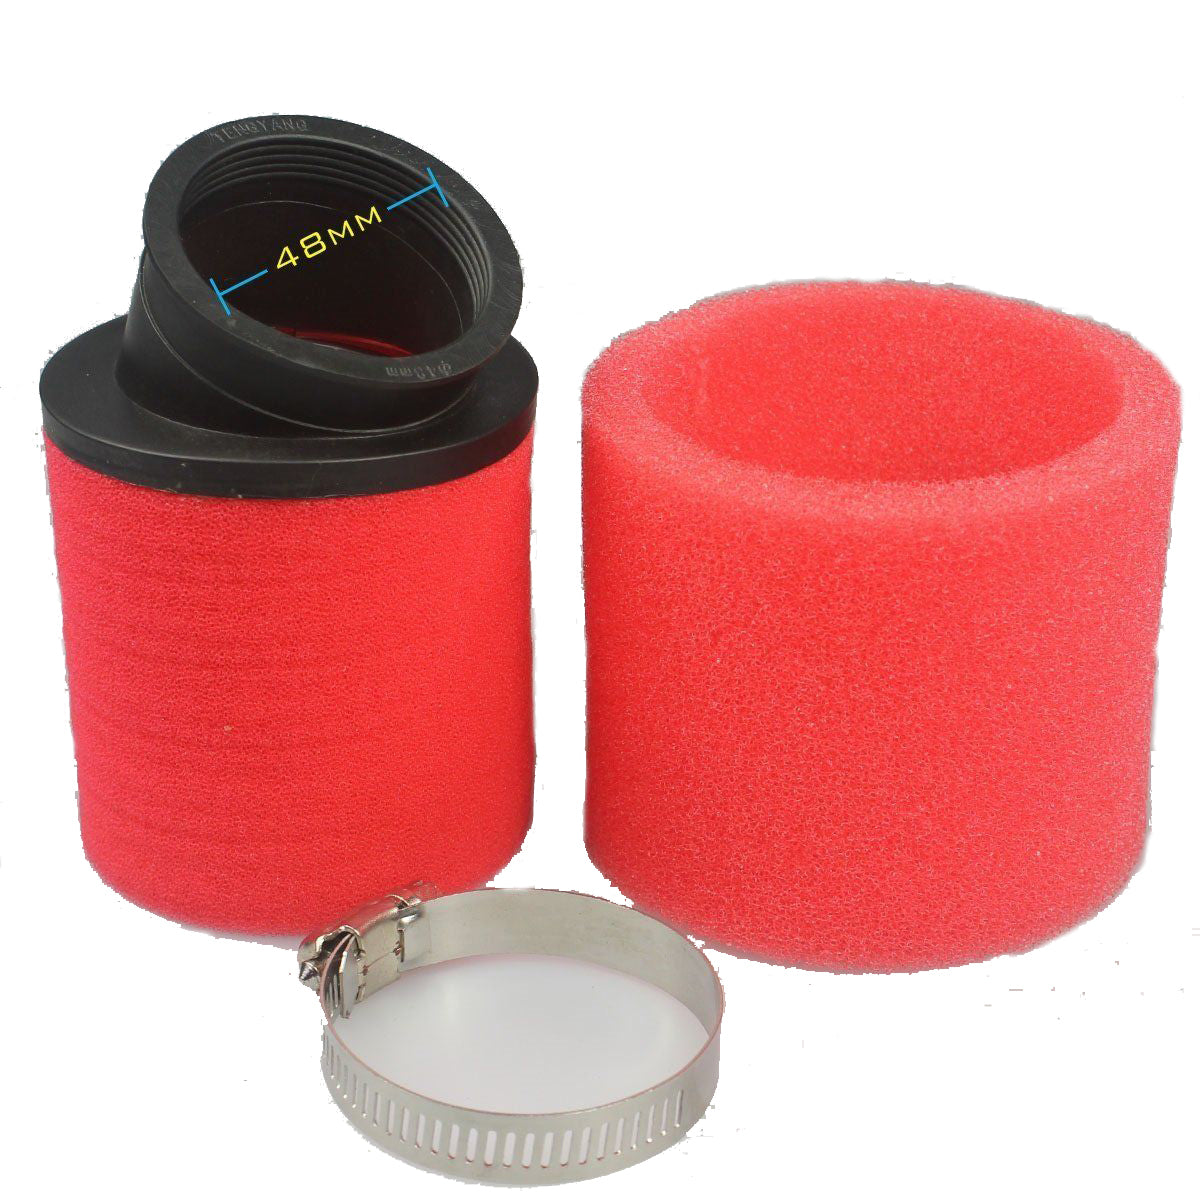 48mm Dual Foam Pod Air Filter Angled Fitting for Dirt Bikes/Quad Bikes/ATV Buggy